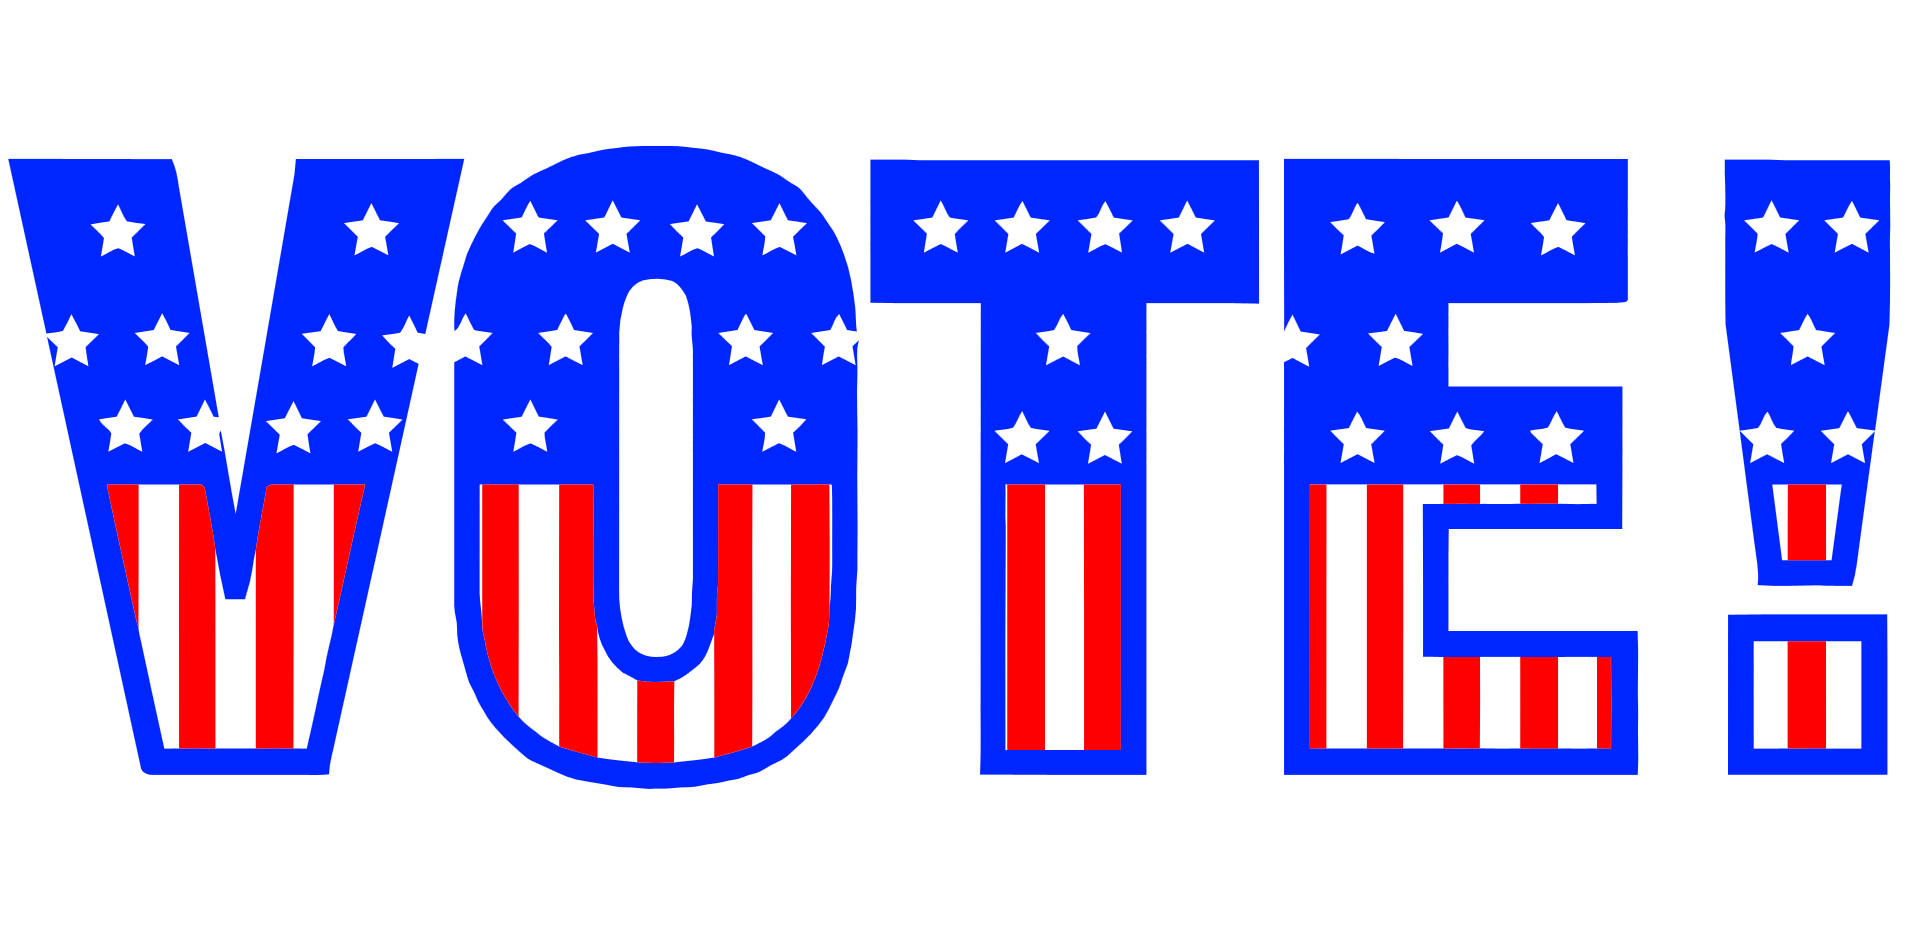 Voting clipart today.  collection of vote